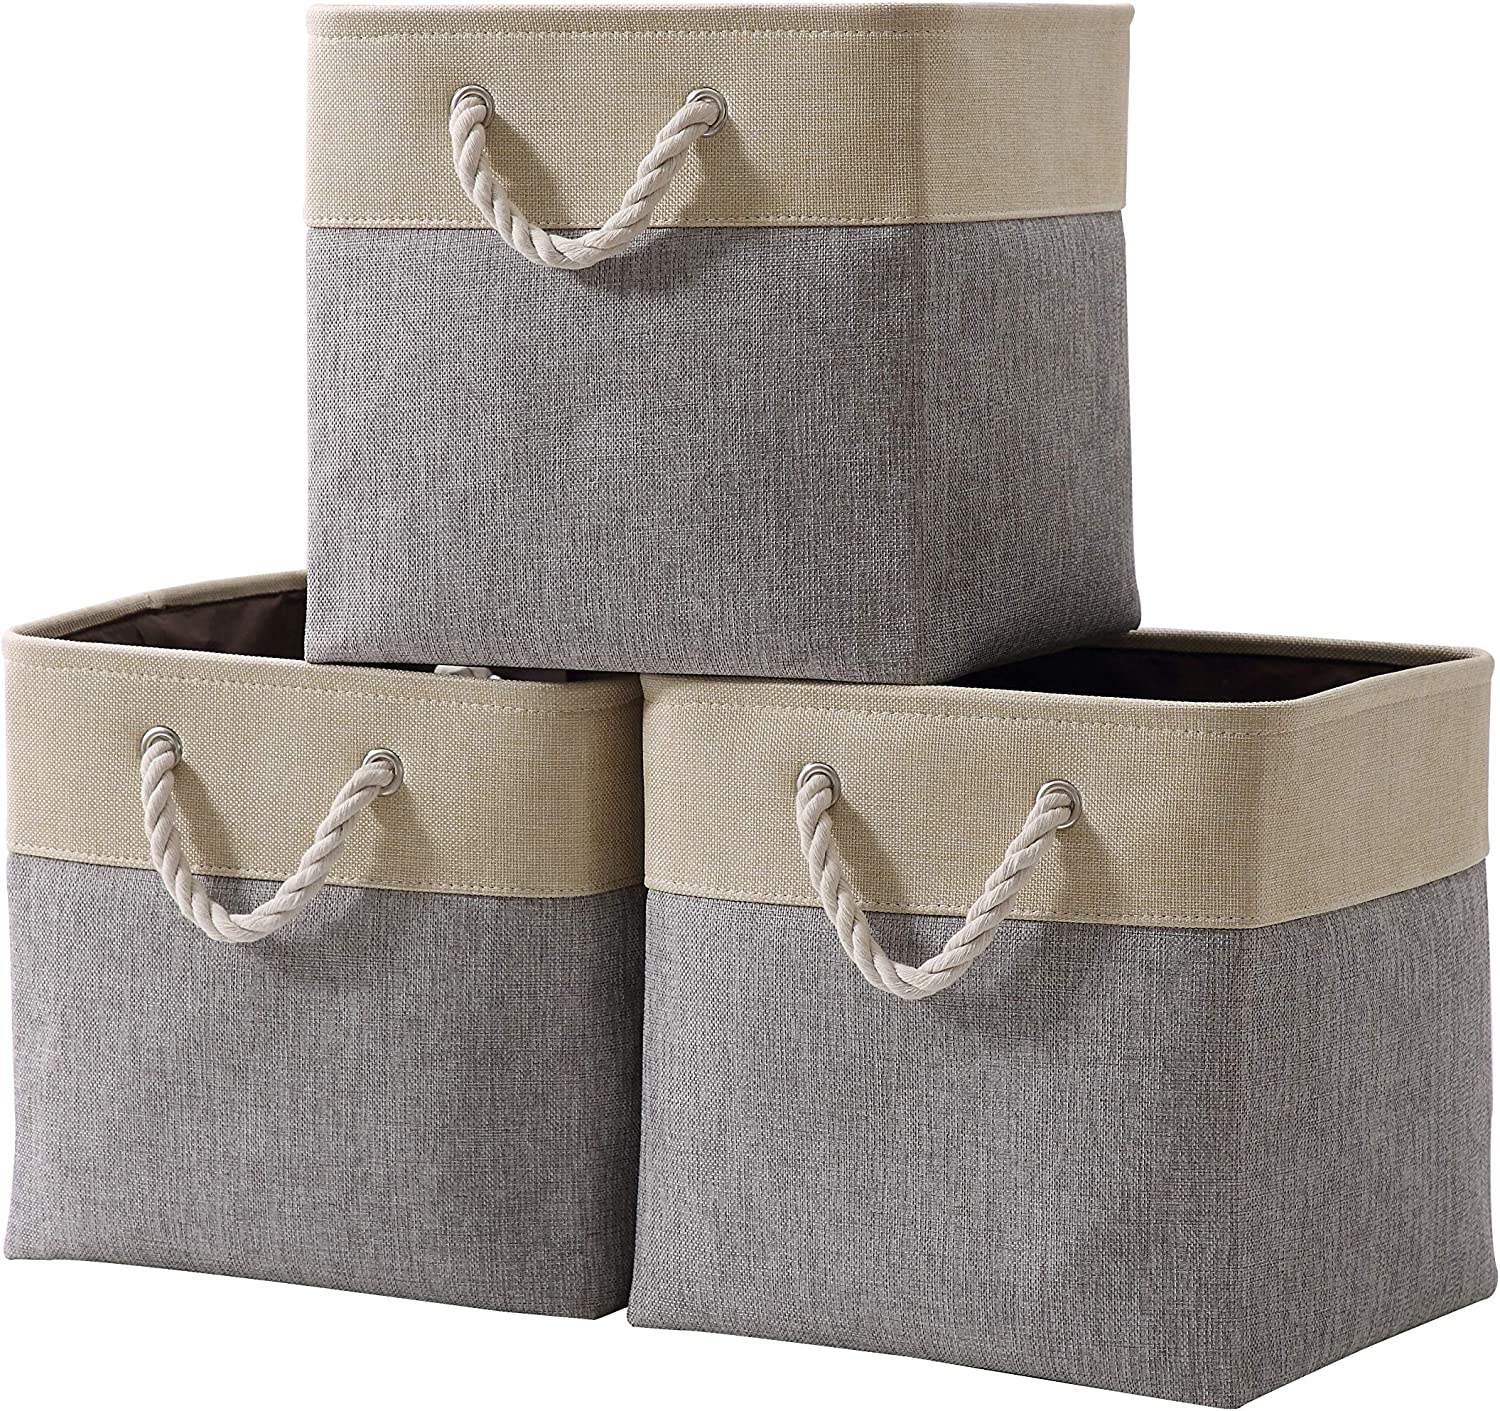 "DECOMOMO Foldable Storage Bin | Collapsible Sturdy Cationic Fabric Storage Basket Cube W/Handles for Organizing Shelf Nursery Home Closet (Grey & Beige, Cube - 13 x 13 x 13""- 3 Pack)"